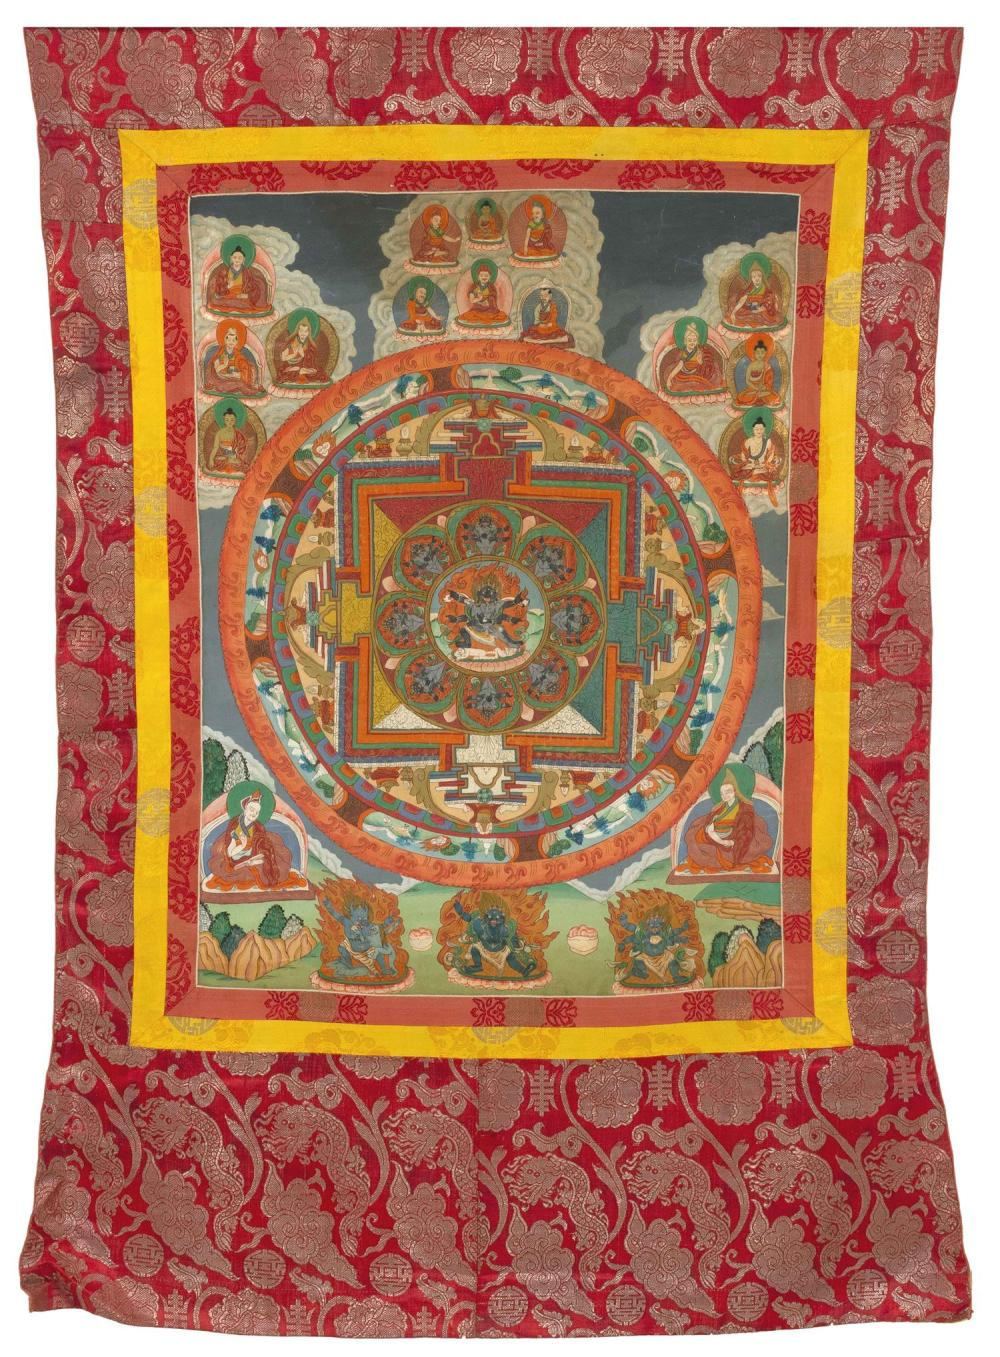 "TIBETAN THANKA In mandala design, with central figure of Mahakala surrounded by various deities. 30"" x 22""."